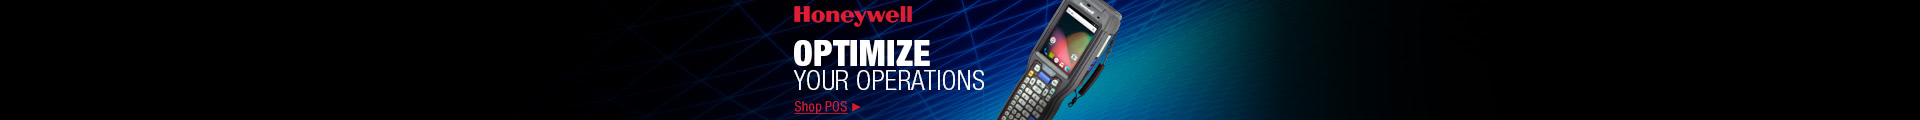 honeywell OPTIMIZE YOUR OPERATIONS